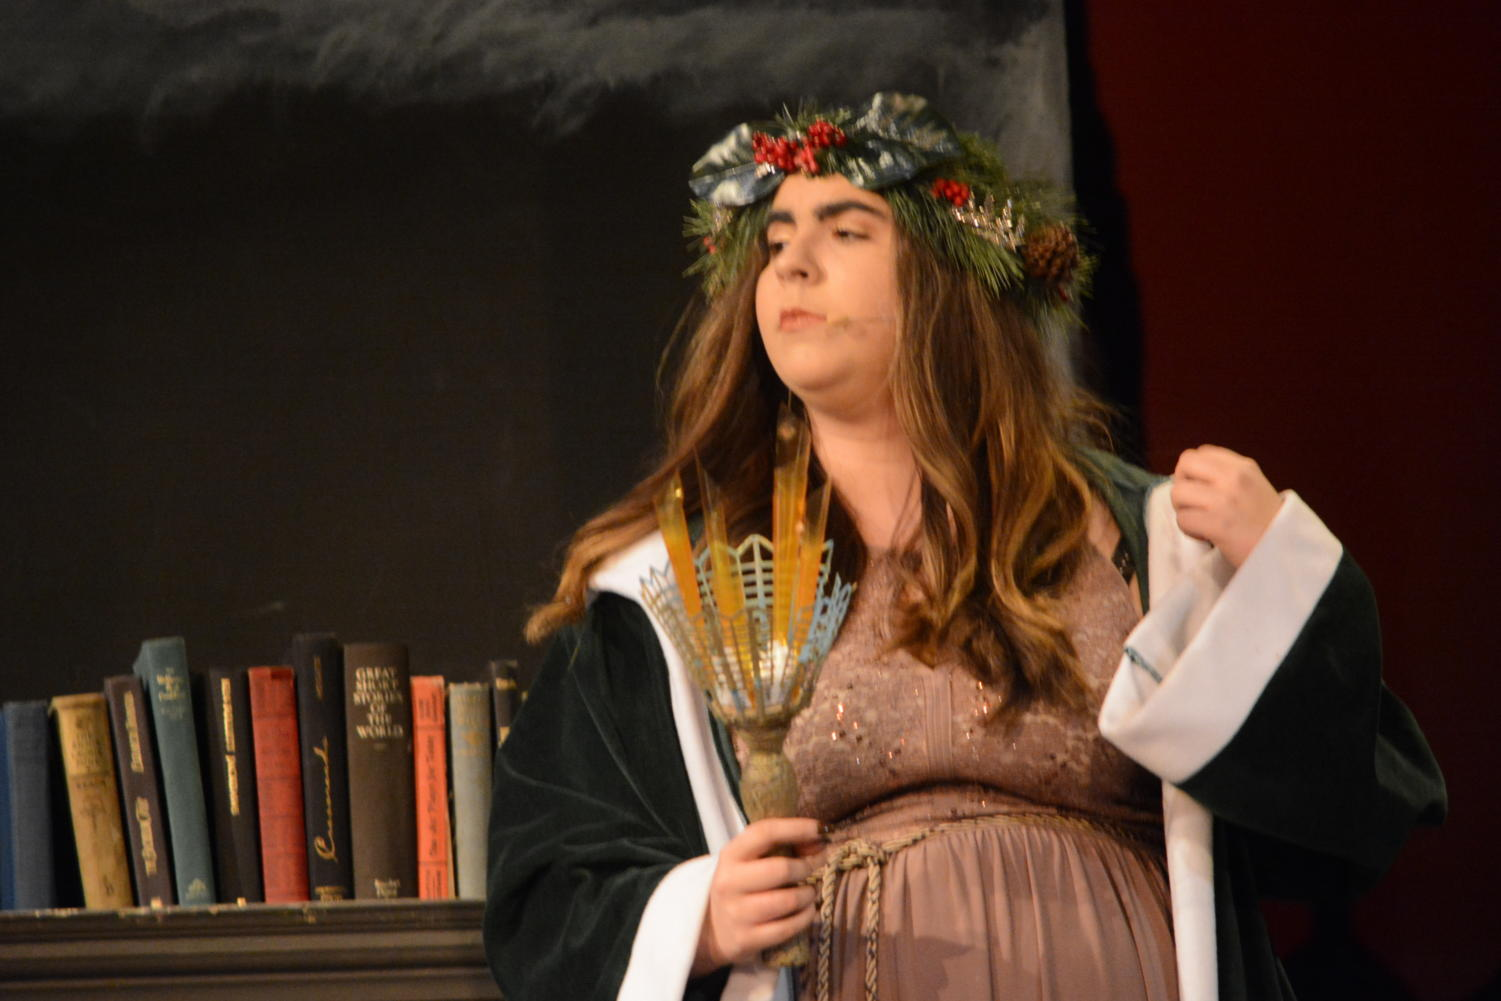 Present+Problems--+The+Ghost+of+Christmas+Present+played+by+senior+Kiersten+Brown+meets+Ebenezer+Scrooge%0Aplayed+by+junior+Audrey+Lewis+in+Scrooge%E2%80%99s+bedroom.+The+Drama+Department+used+the+Romulus+Linney+adaption+of+A+Christmas+Carol.